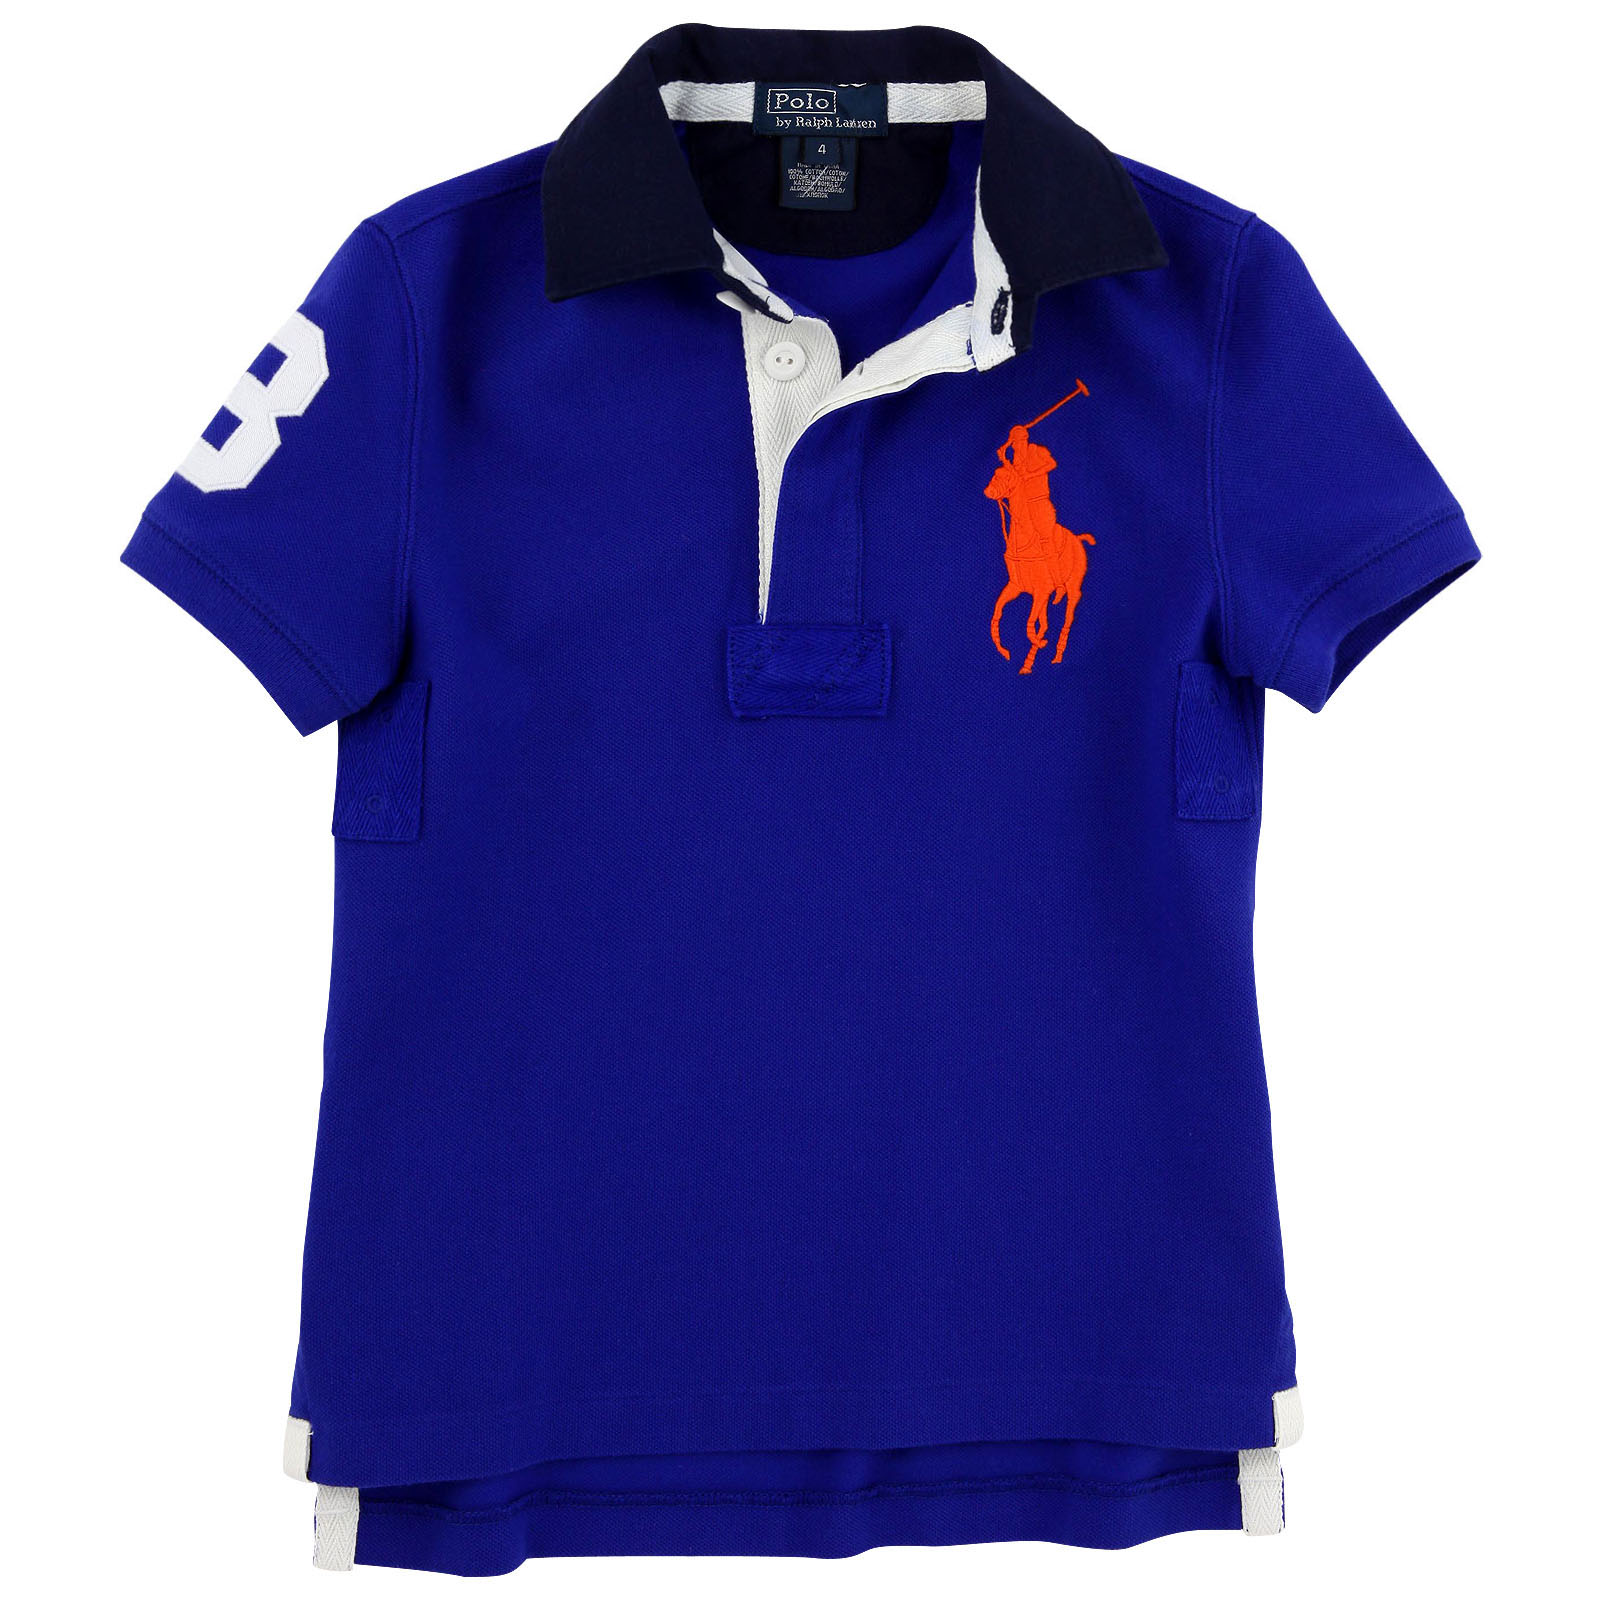 Polo Ralph Lauren Polo Shirt - ClipArt Best